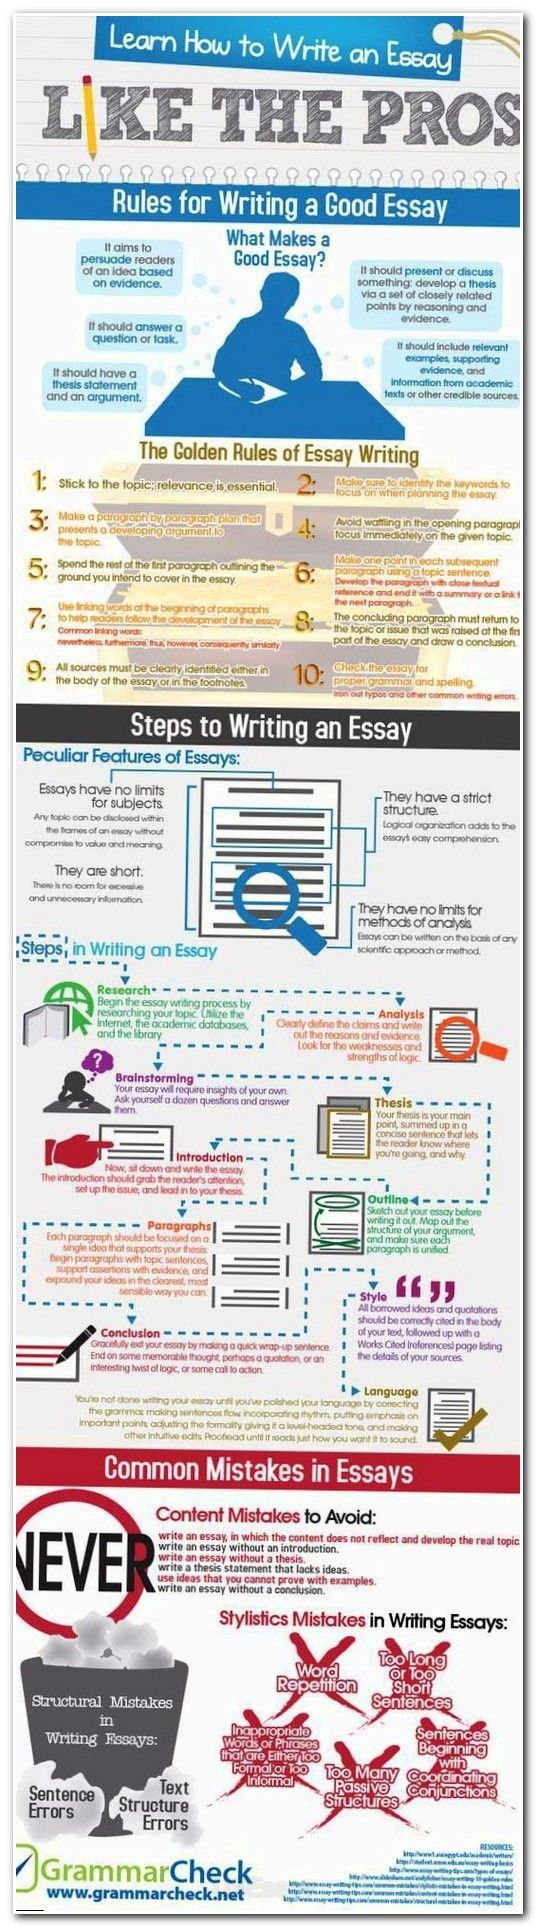 #essay #essaywriting reflective analysis example, i need help writing an essay, how to write good expository essays, imagery in macbeth, religious views on abortion, research paper for, opinion essay topics, report writing methodology, social science dissertation ideas, entry requirements for mba, what is academic essay, format of research writing, english research project ideas, best writing samples, quality essay writing services